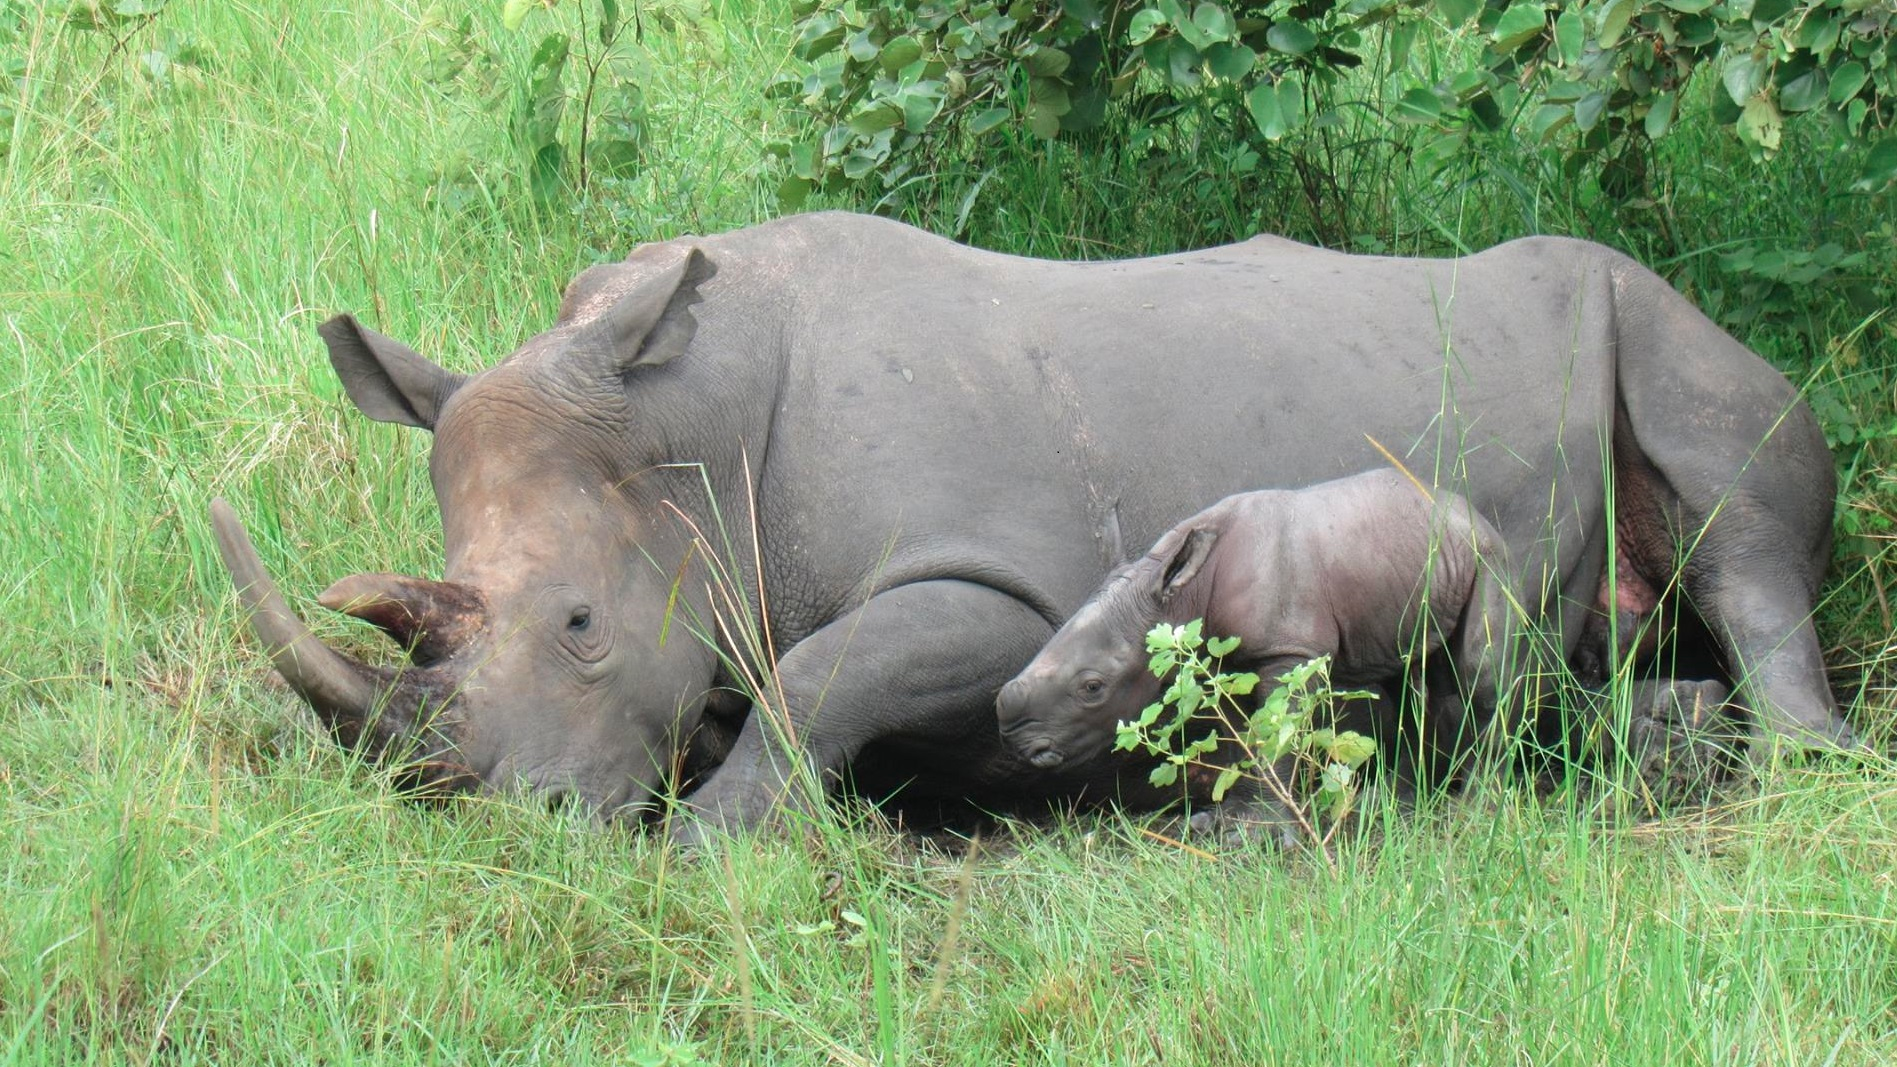 The Augsburg zoo has a long standing focus on supporting conservation efforts of the southern white rhinoceros in Uganda | Barbara Jantschke, Zoo Augsburg